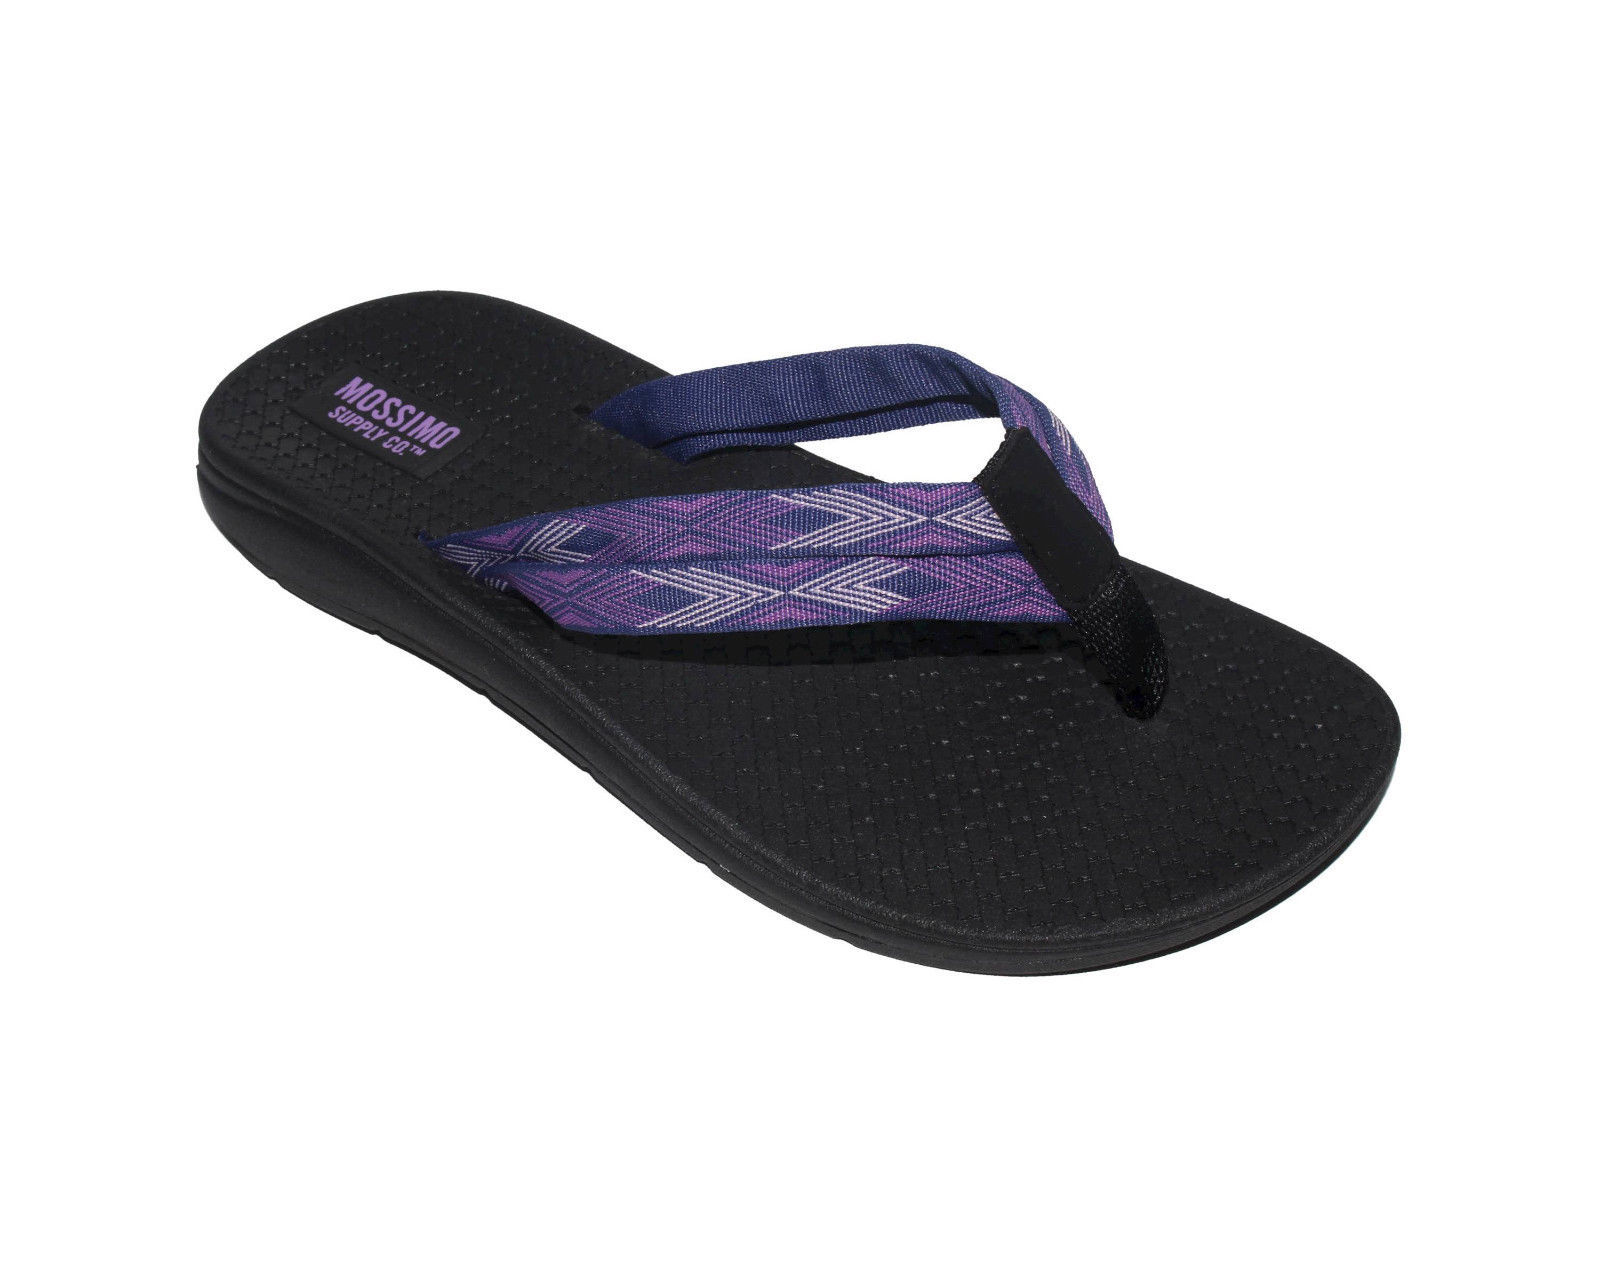 36e96b1b9b7 Women s Weslee Flip Flop Sandals Mossimo and 17 similar items